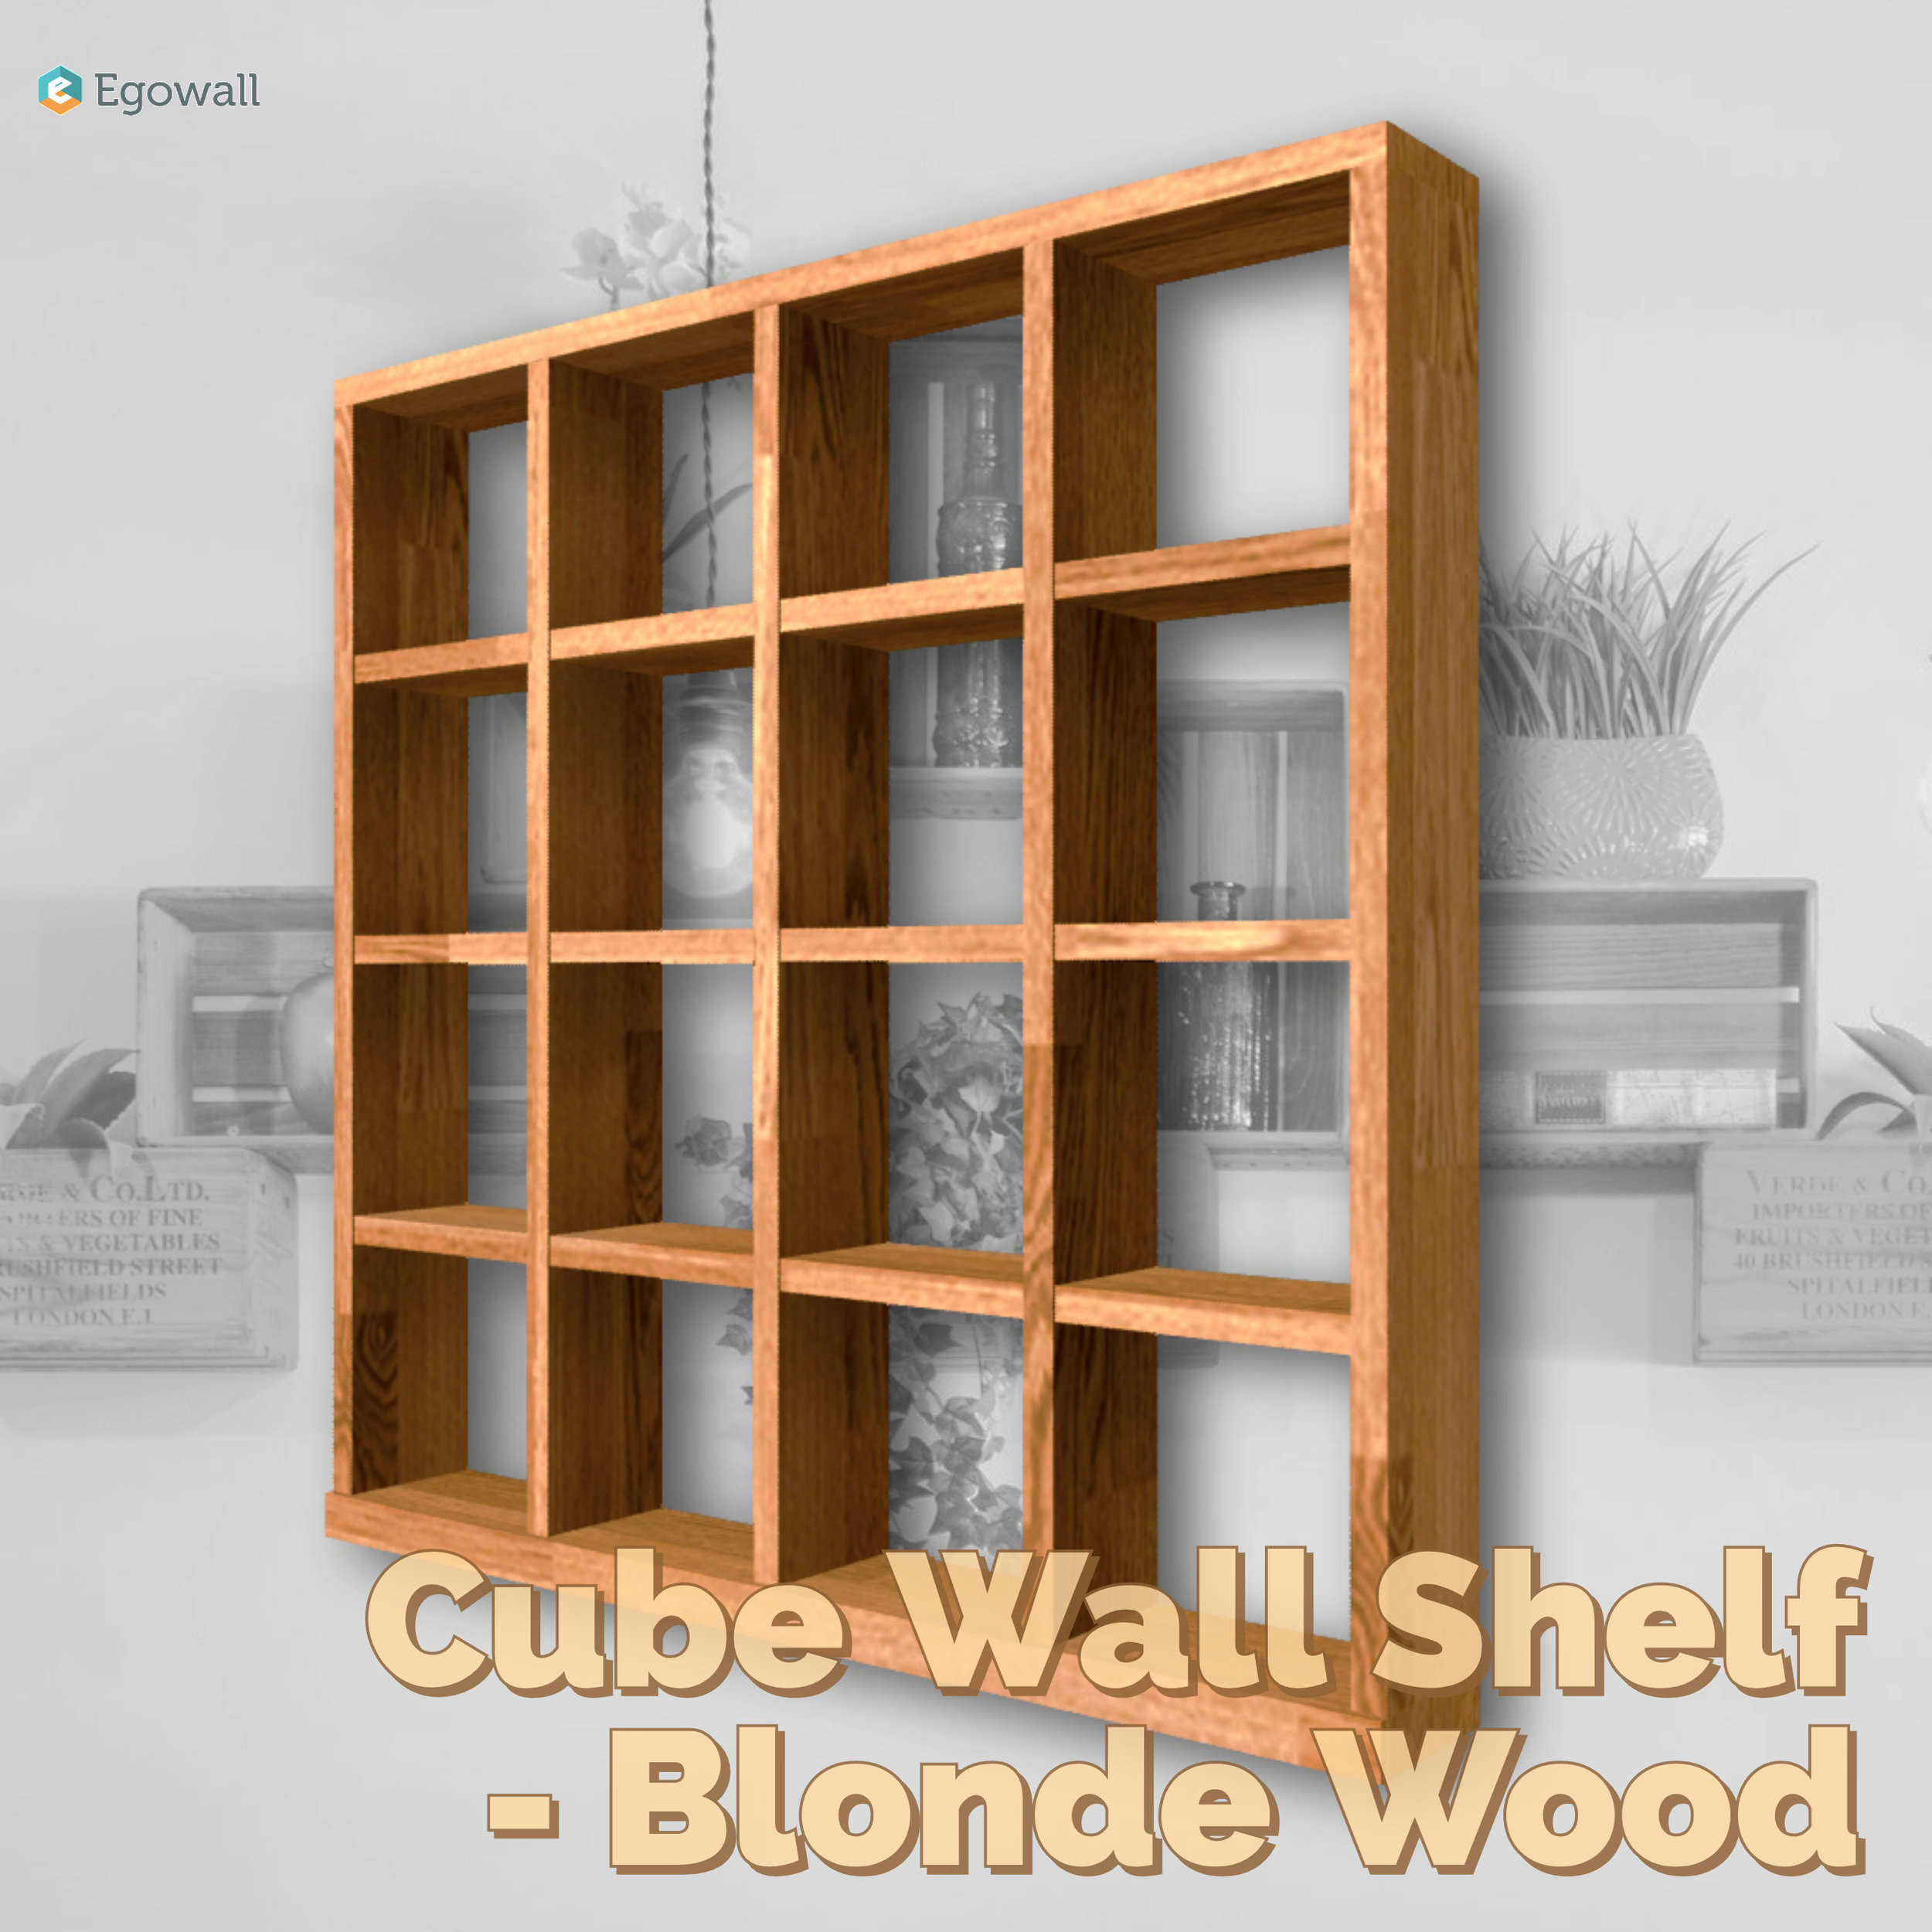 Cube Wall Shelf.Instagram.jpg